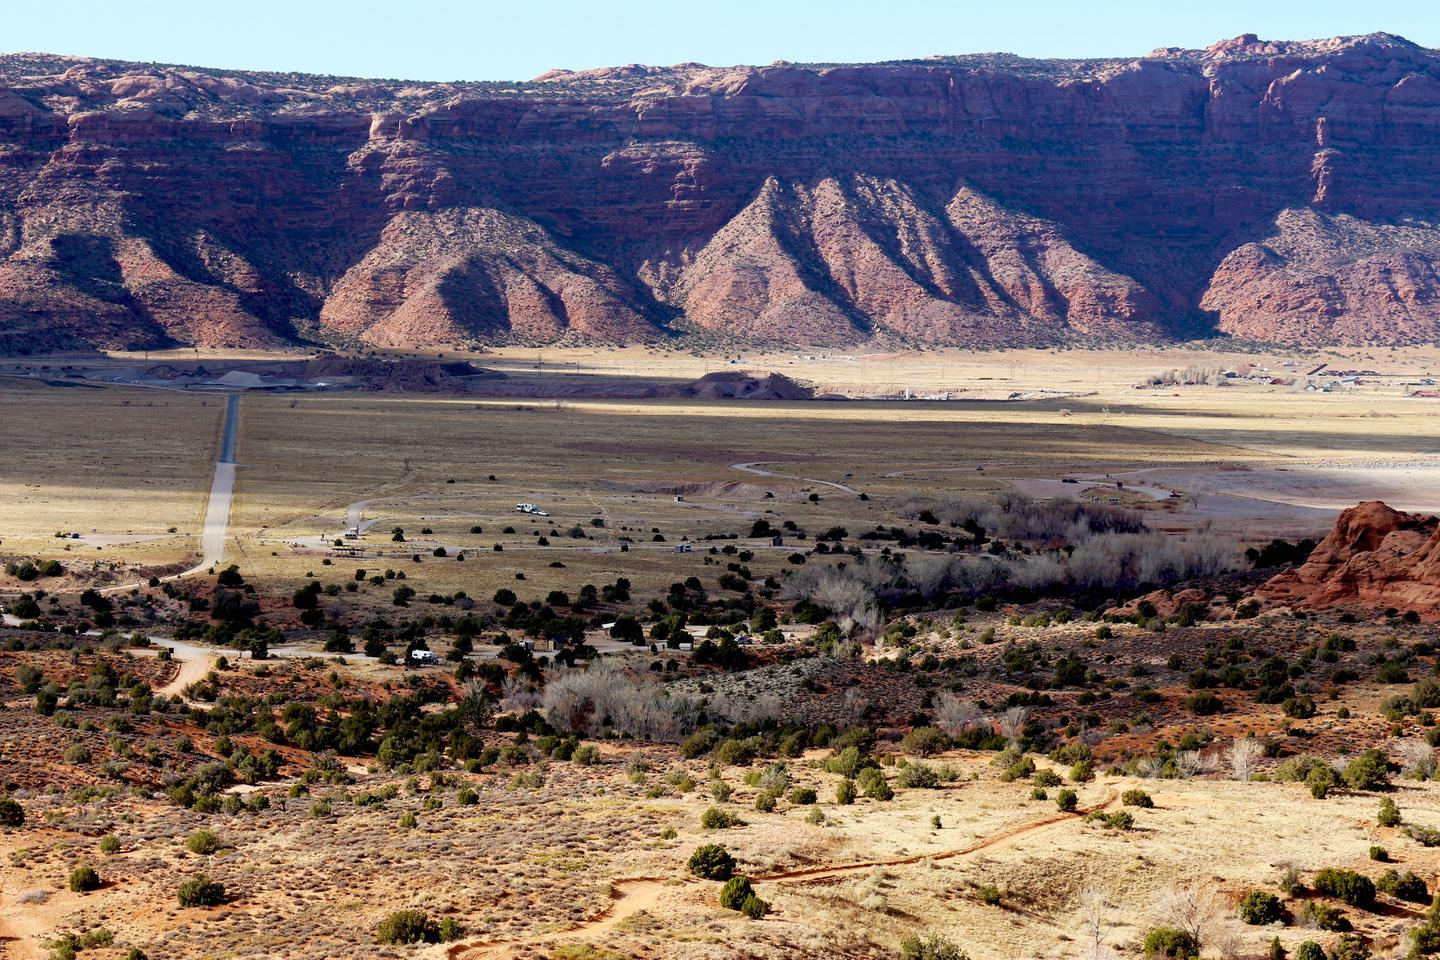 Overview of Ken's Lake Campground with red rock cliffs on the horizon.